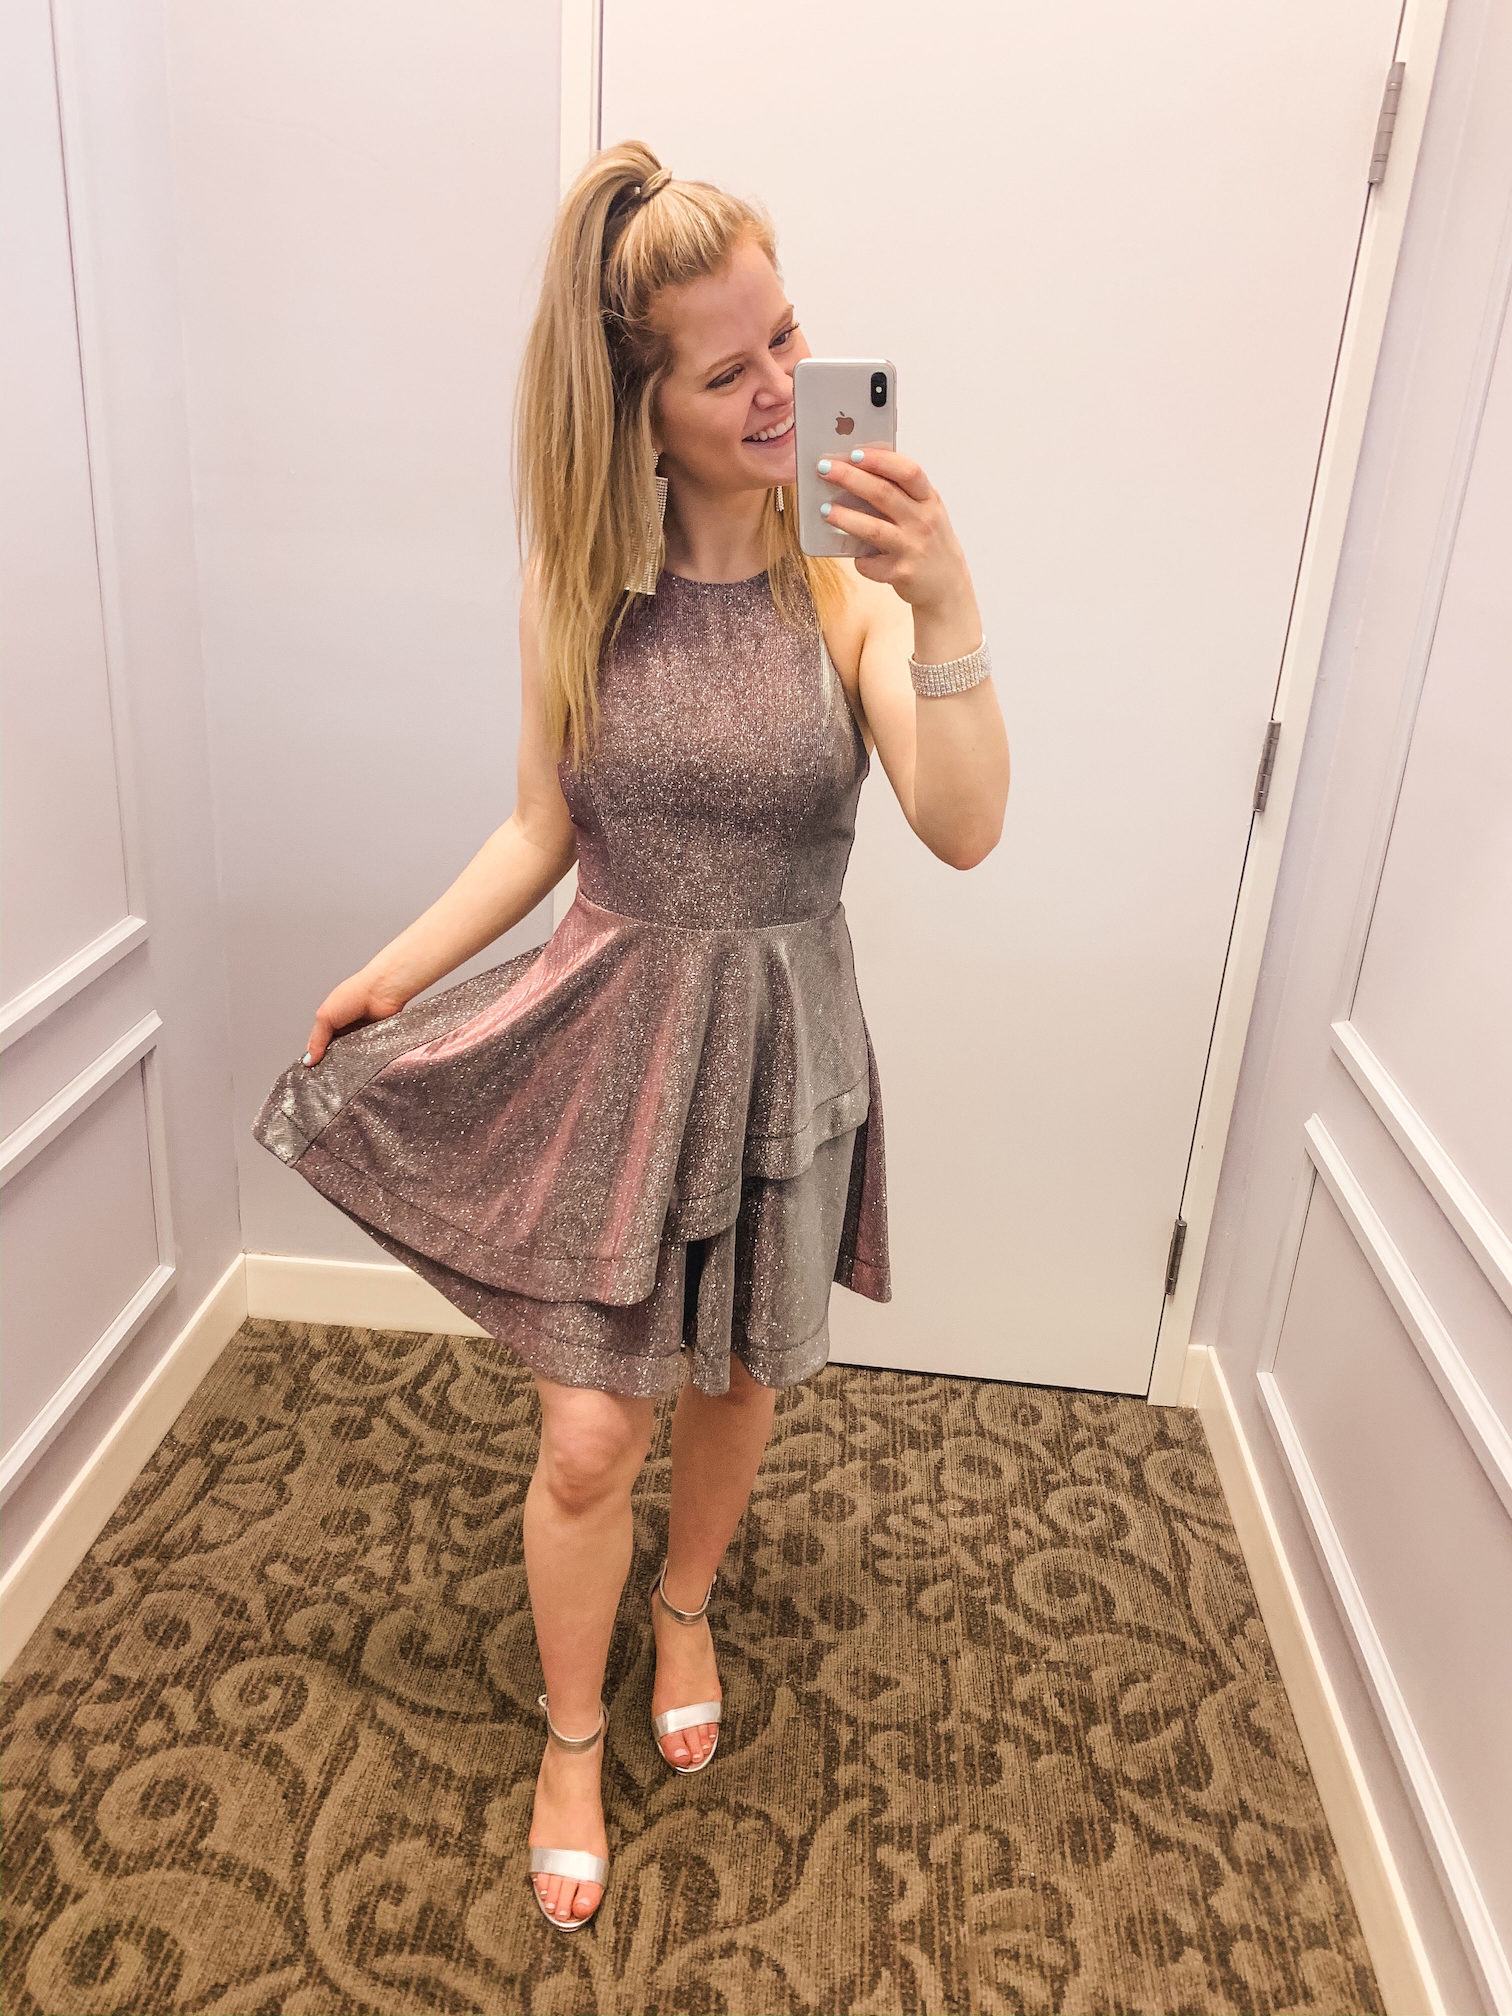 Mirror photo of girl in short prom dress